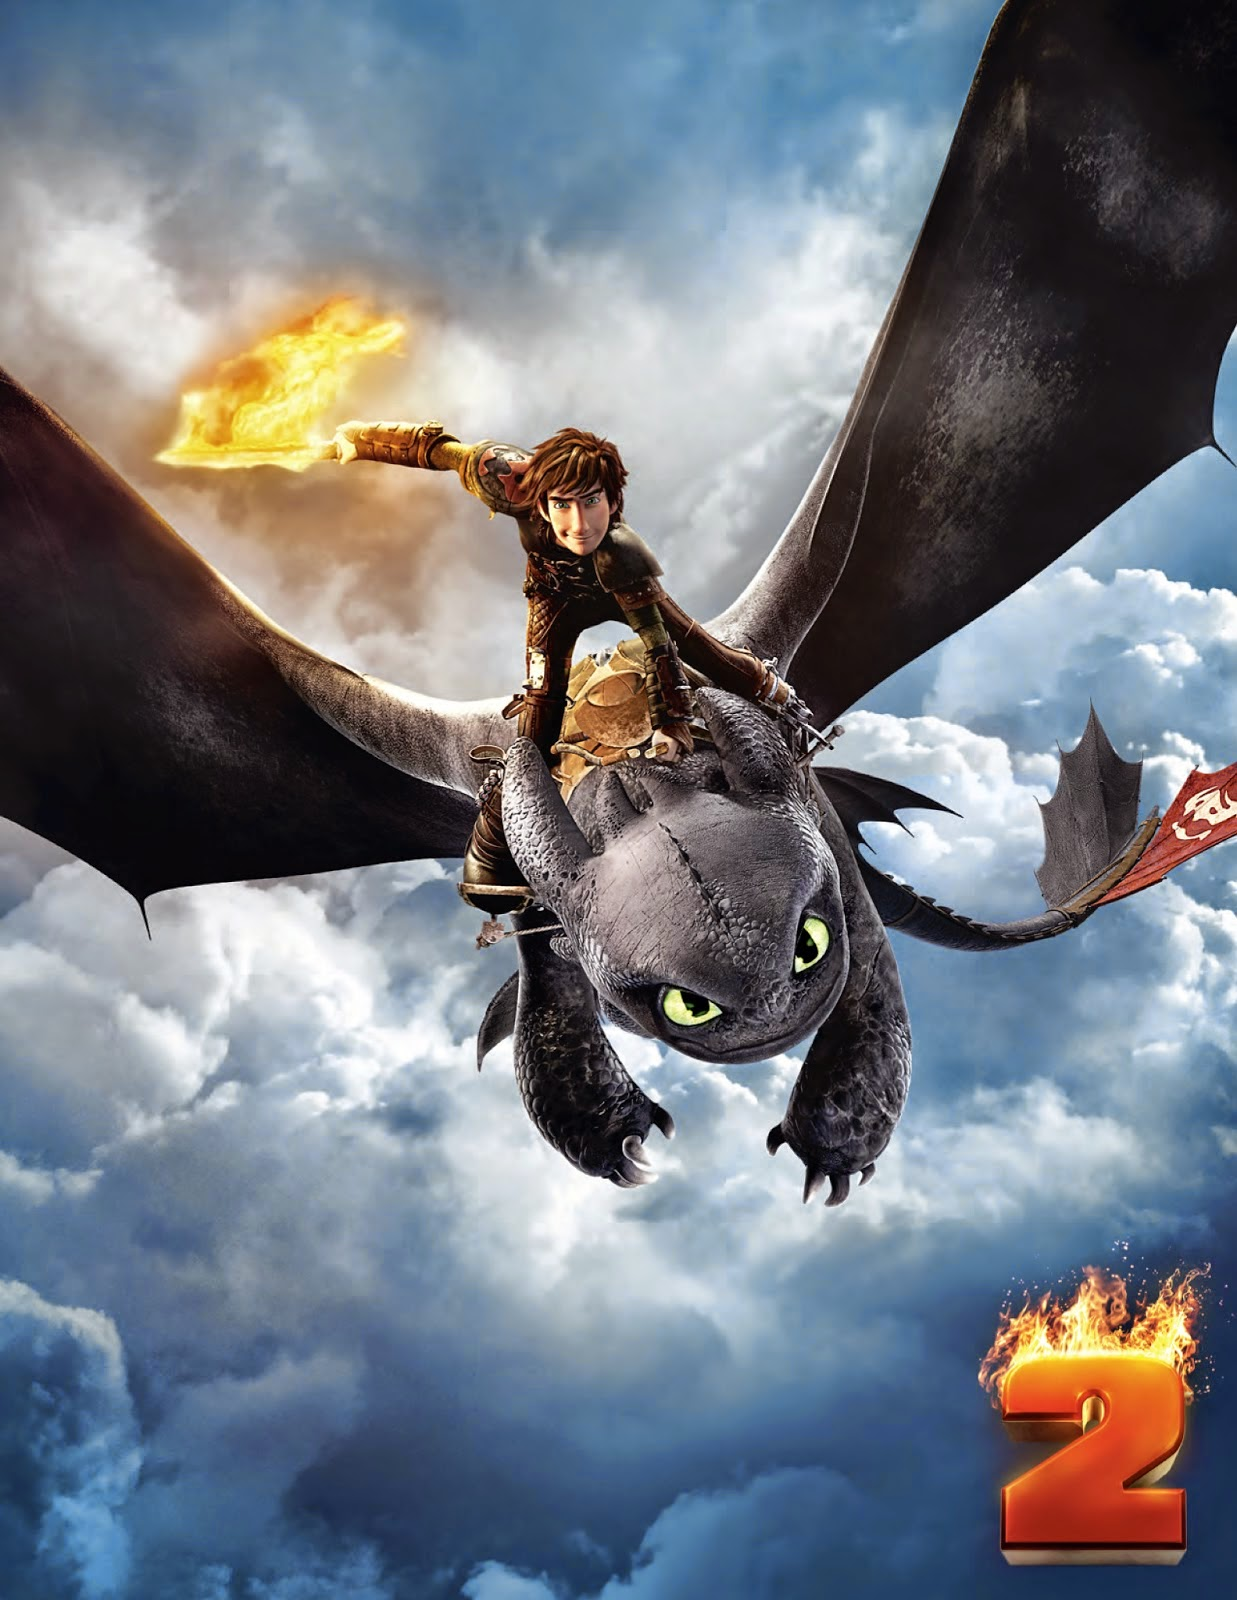 Watch How To Train Your Dragon 2 (2014) Full Movie Online Free